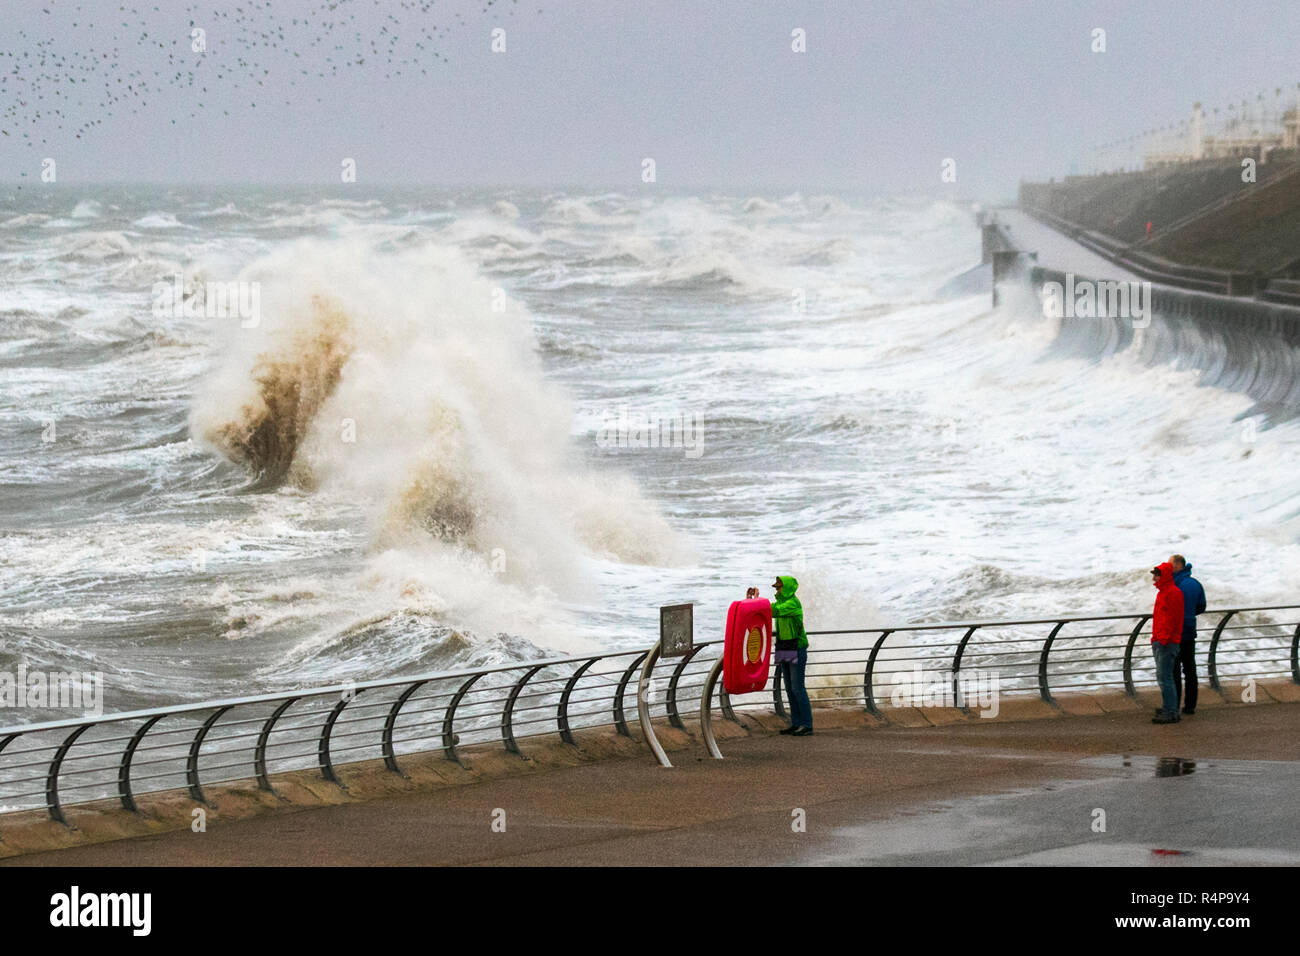 Blackpool, Lancashire. 28th Nov 2018. UK Weather: Storm Diana batters UK with heavy rain and 70mph Gale force winds.  A spell of heavy rain and strong winds is with weather warnings issued with some short-term loss of services as winds strengthen. Credit; MediaWorldImages/AlamyLiveNews. - Stock Image